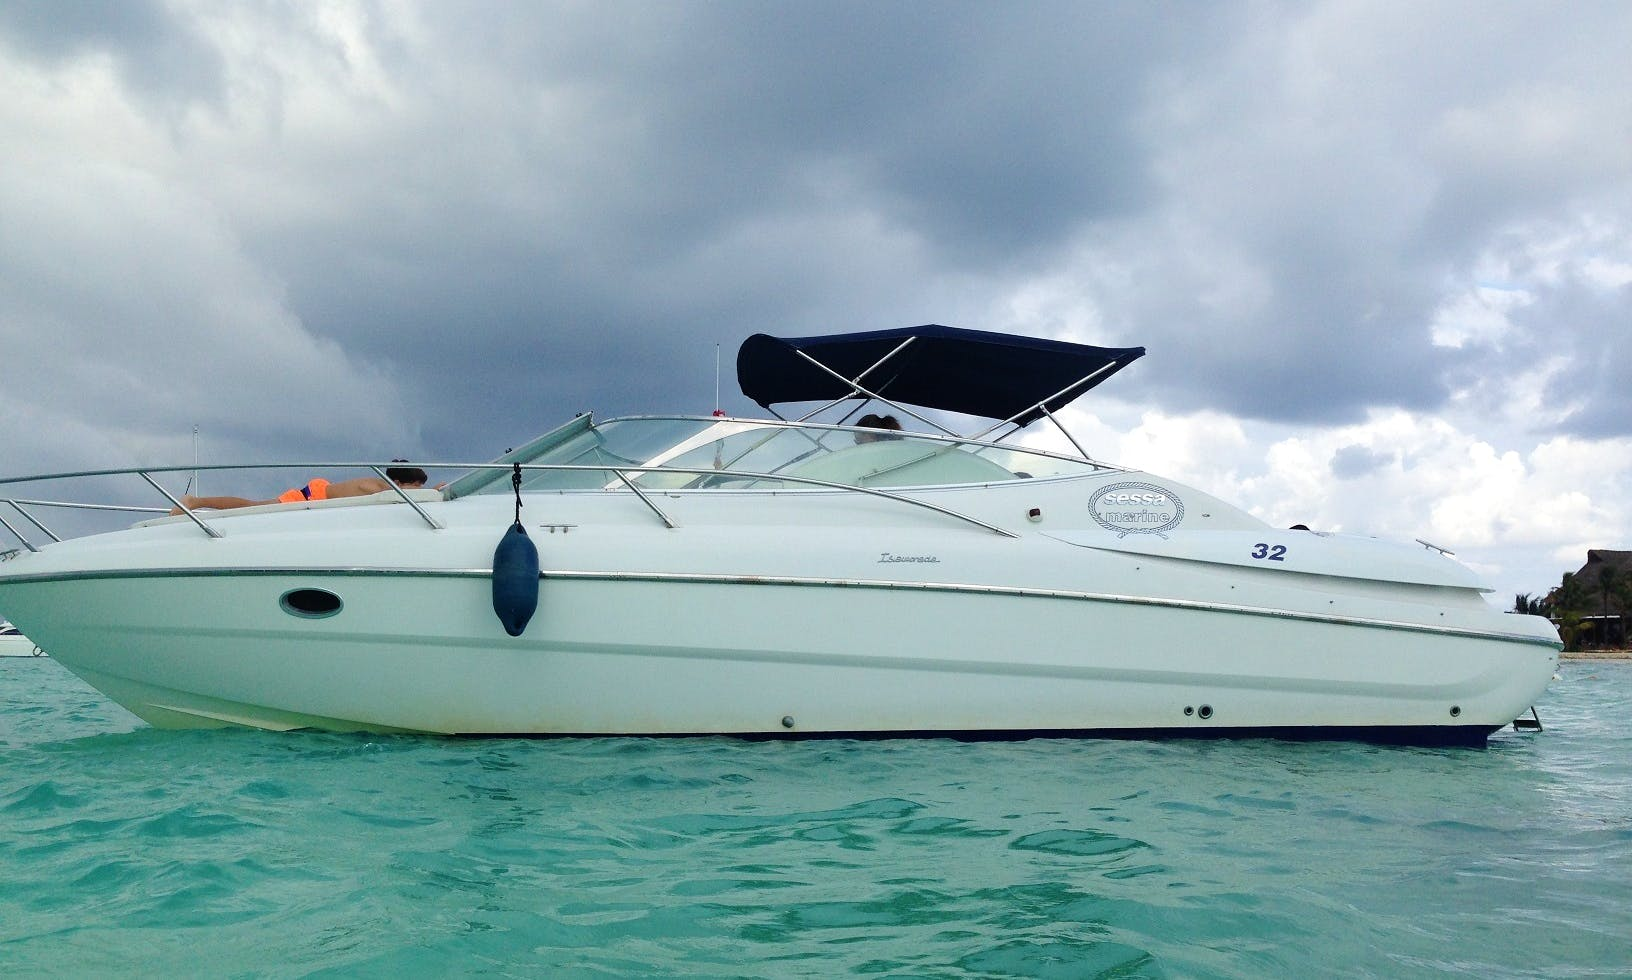 Enjoy the Best Economic Yacht in Cancún with Excellent Captain